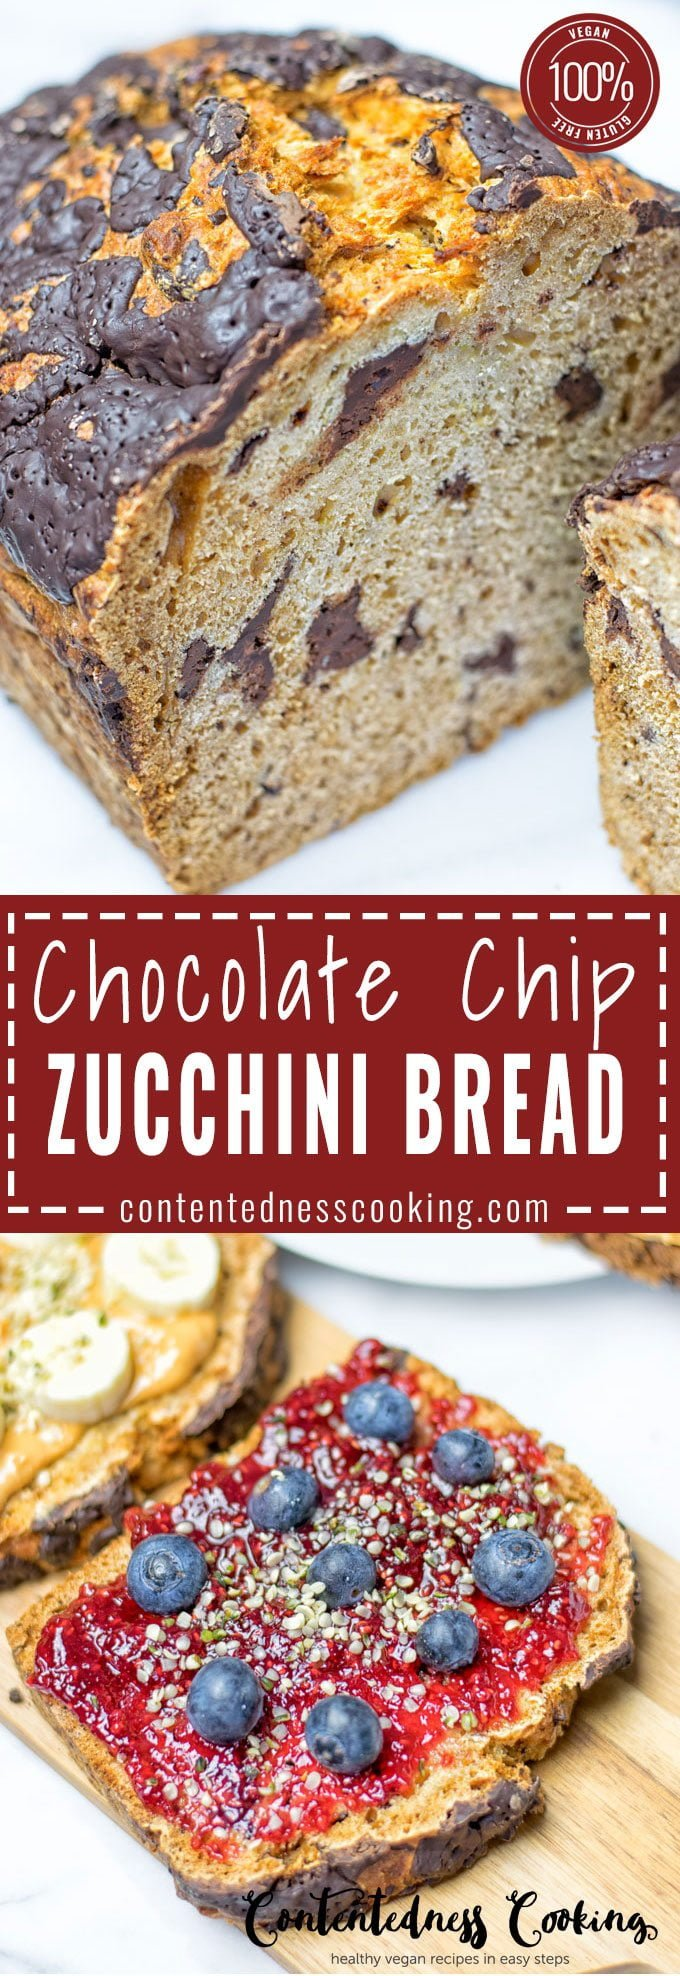 Chocolate Chip Zucchini Bread | #vegan #glutenfree #contentednesscooking